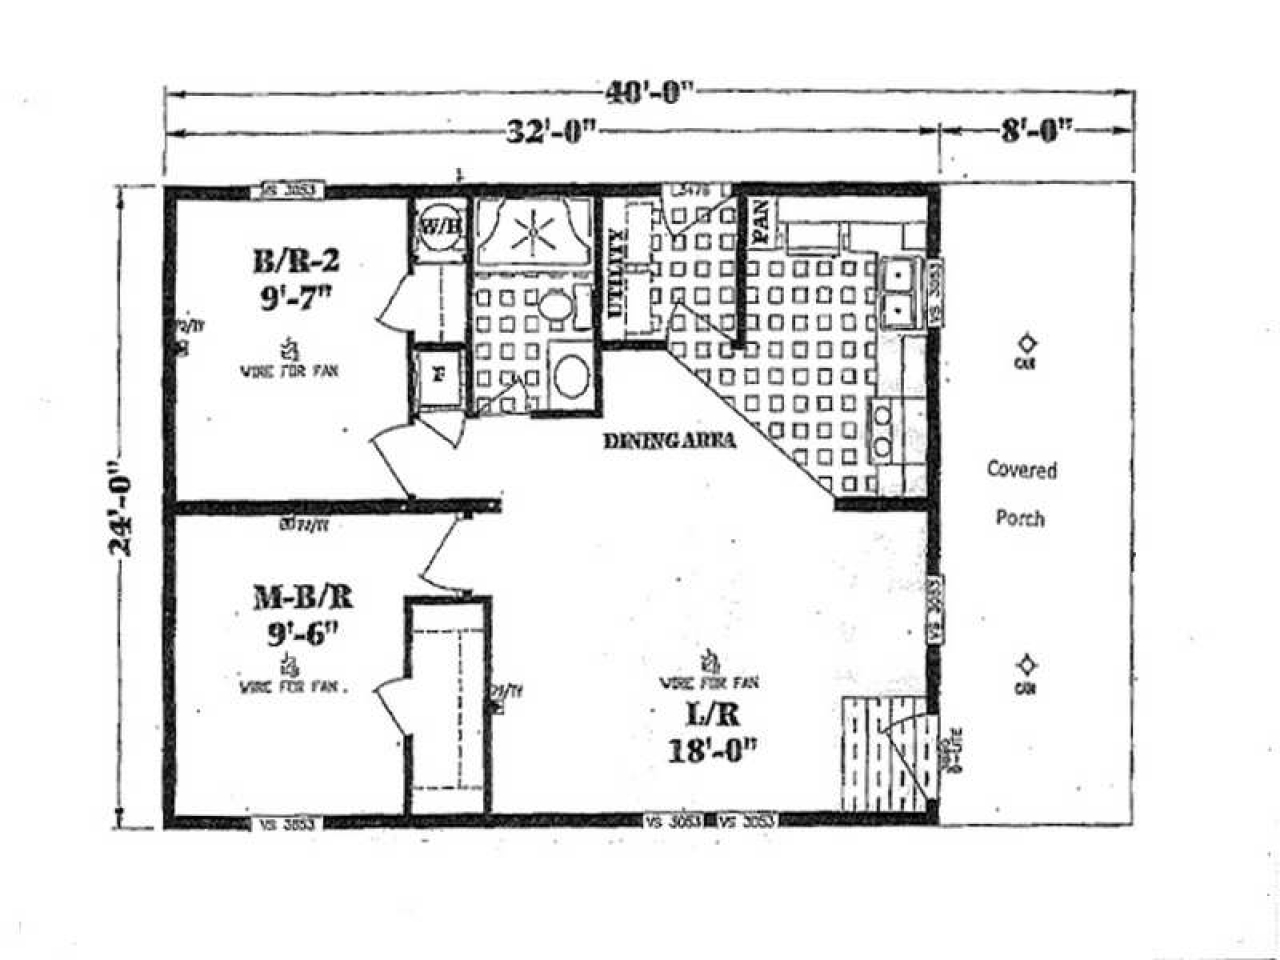 Luxury Double Wide Mobile Homes Small Double Wide Mobile Home Floor Plans Floor Plans For 2